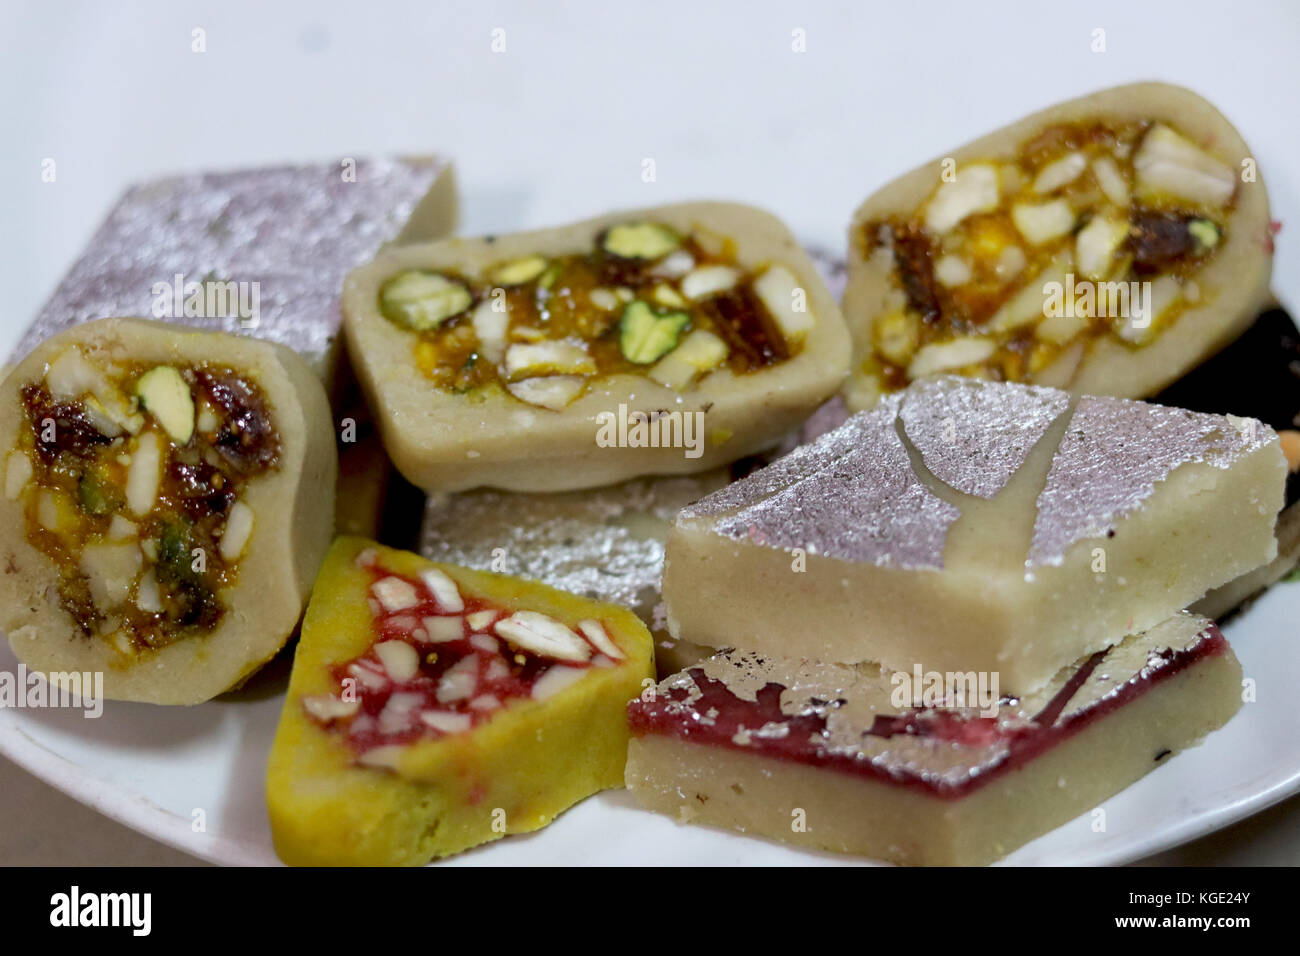 Indian festival Sweet Food or mithai on White Background - Stock Image